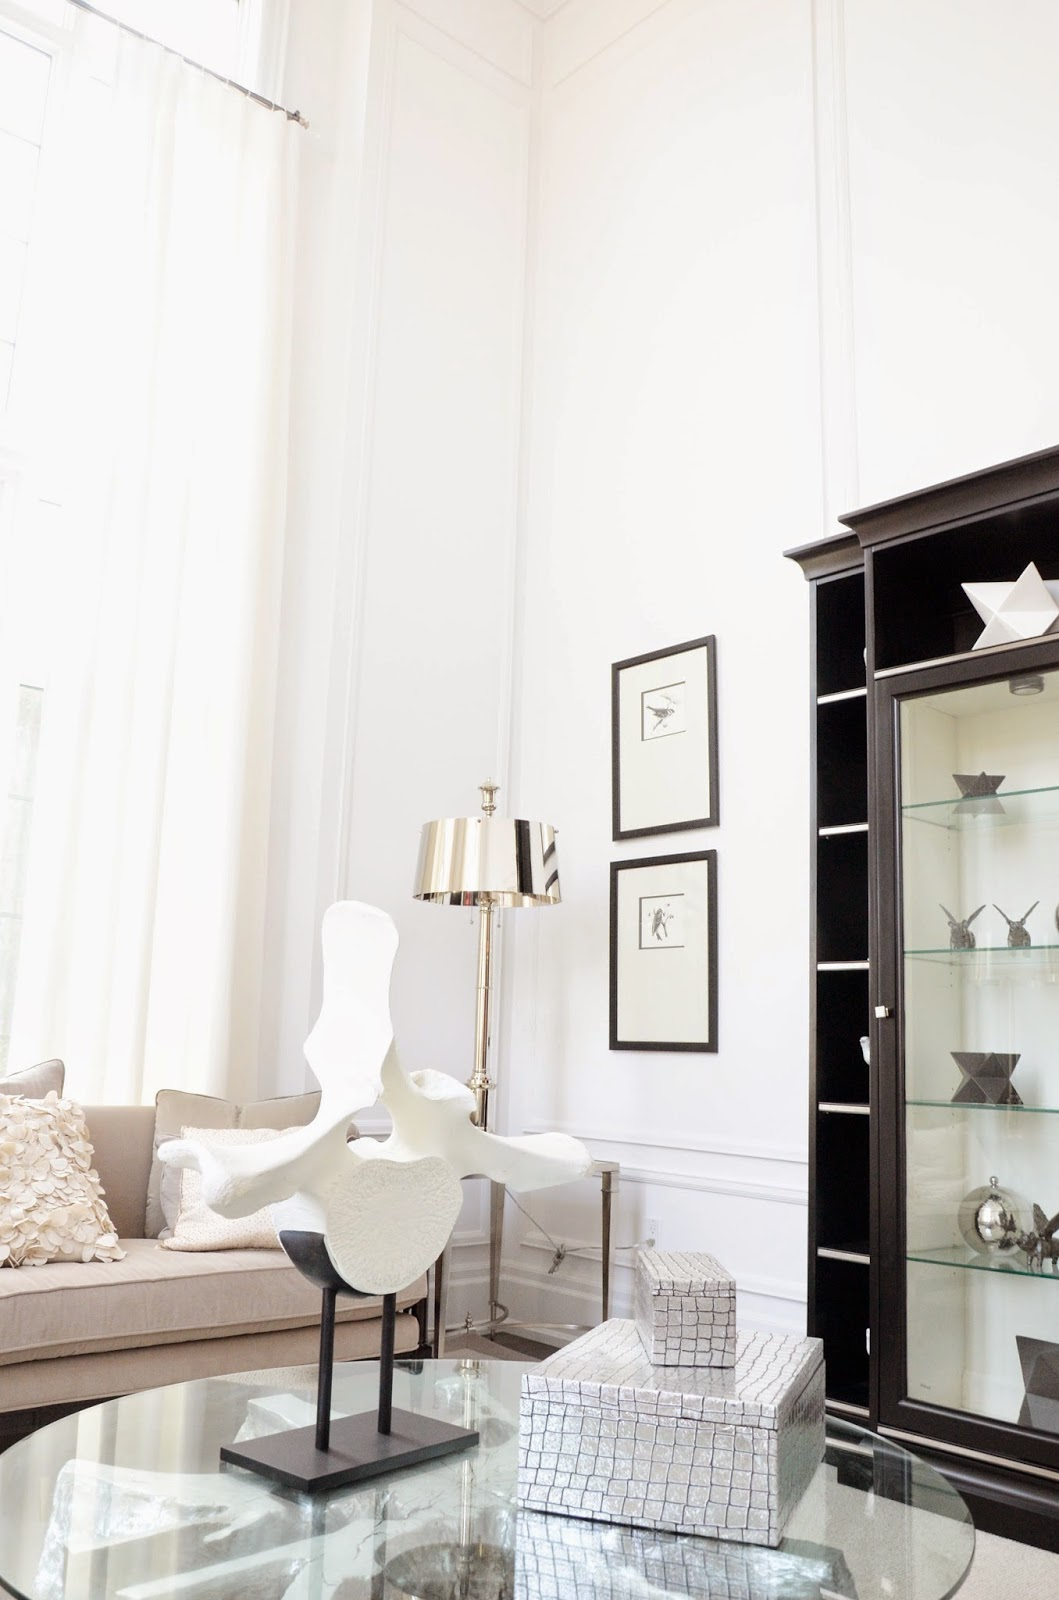 Interior Deisgn Inspiration: Princess Margaret Lotto Show Home